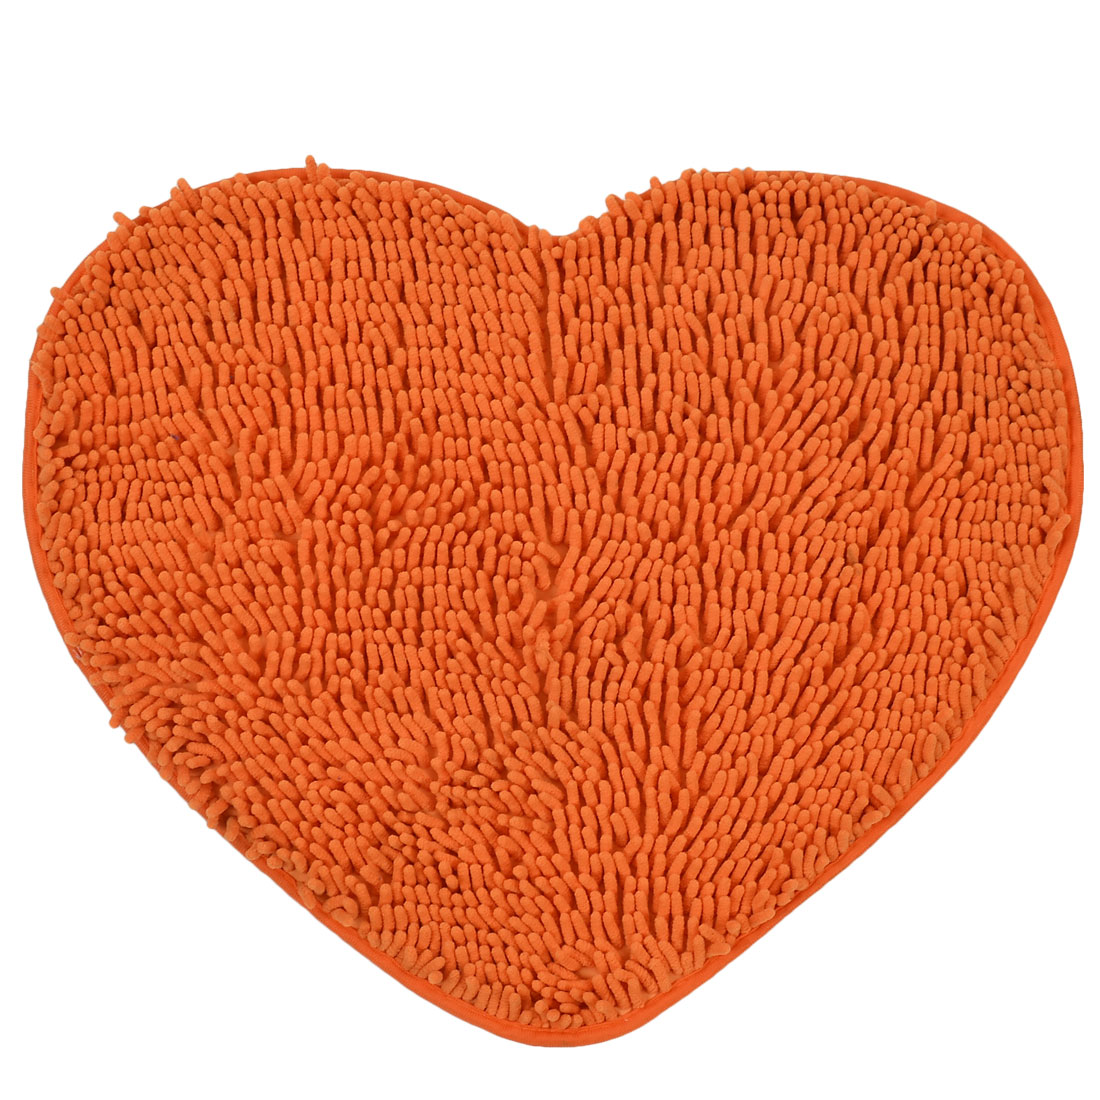 56cm x 45cm Orange Polyester Heart Shaped Absorbent Non-slip Pad Bath Shower Rug